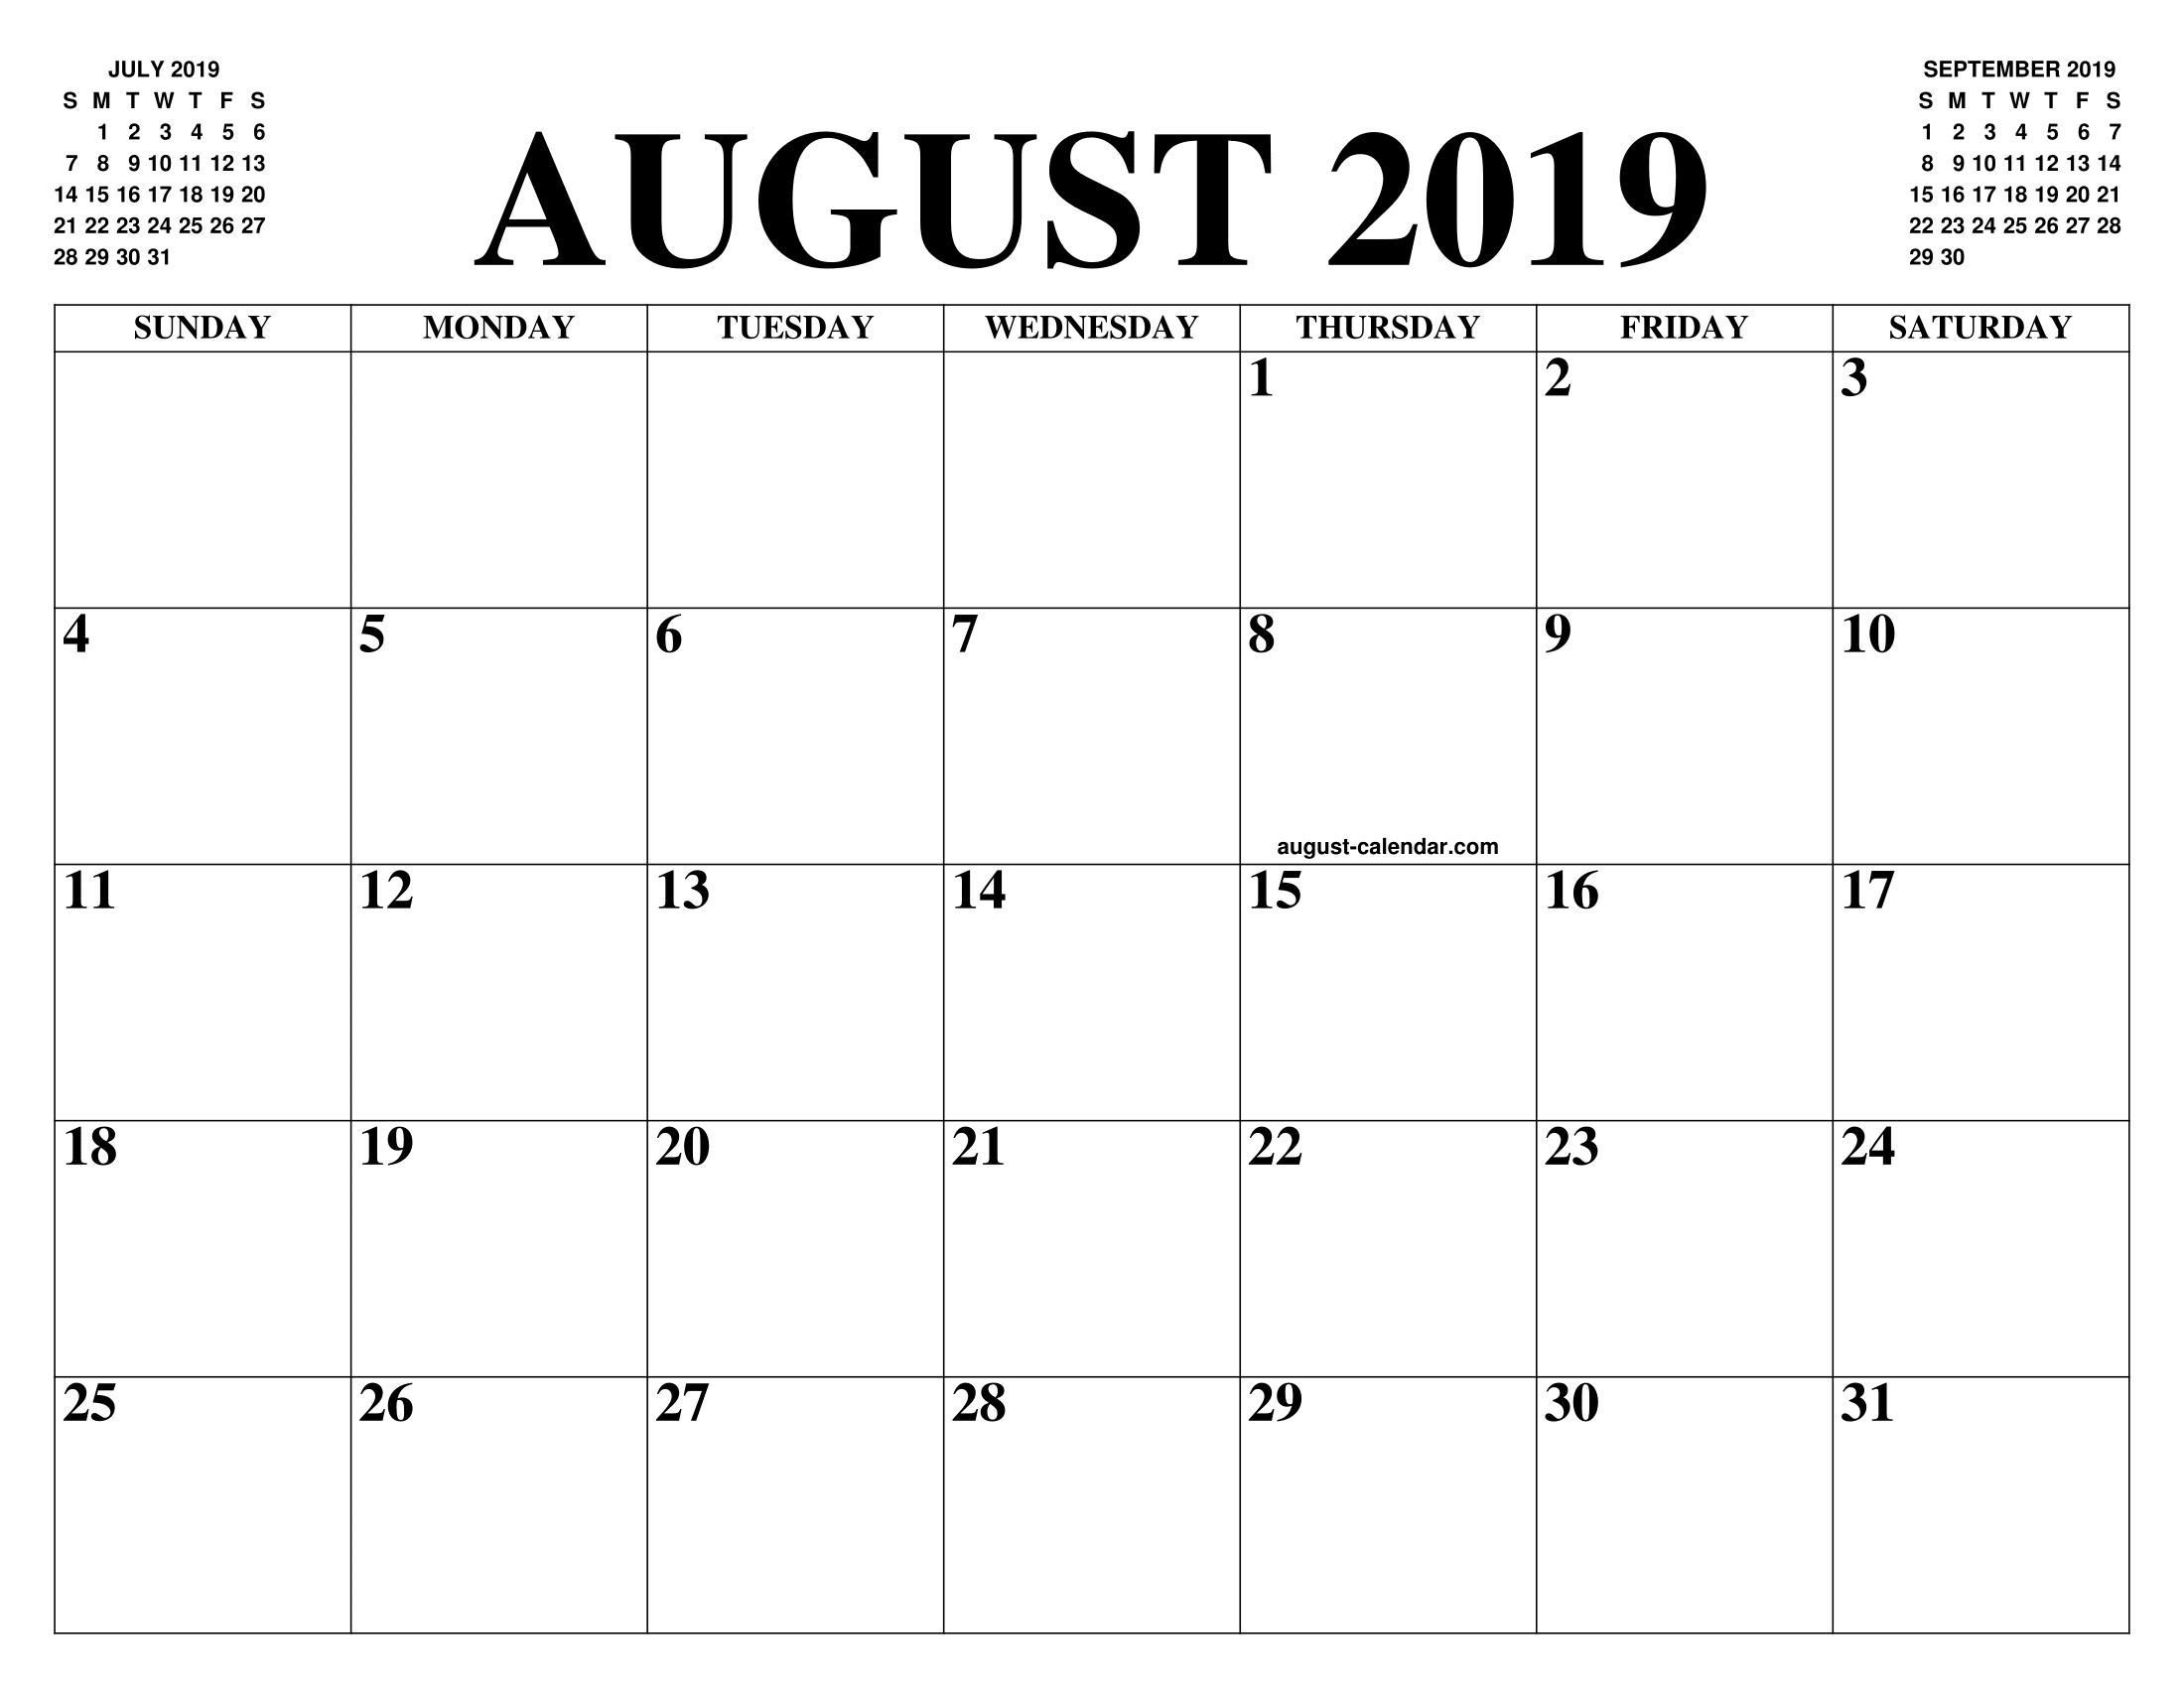 August 2019 Calendar.August 2019 2020 Calendar Of The Month Free Printable August 2019